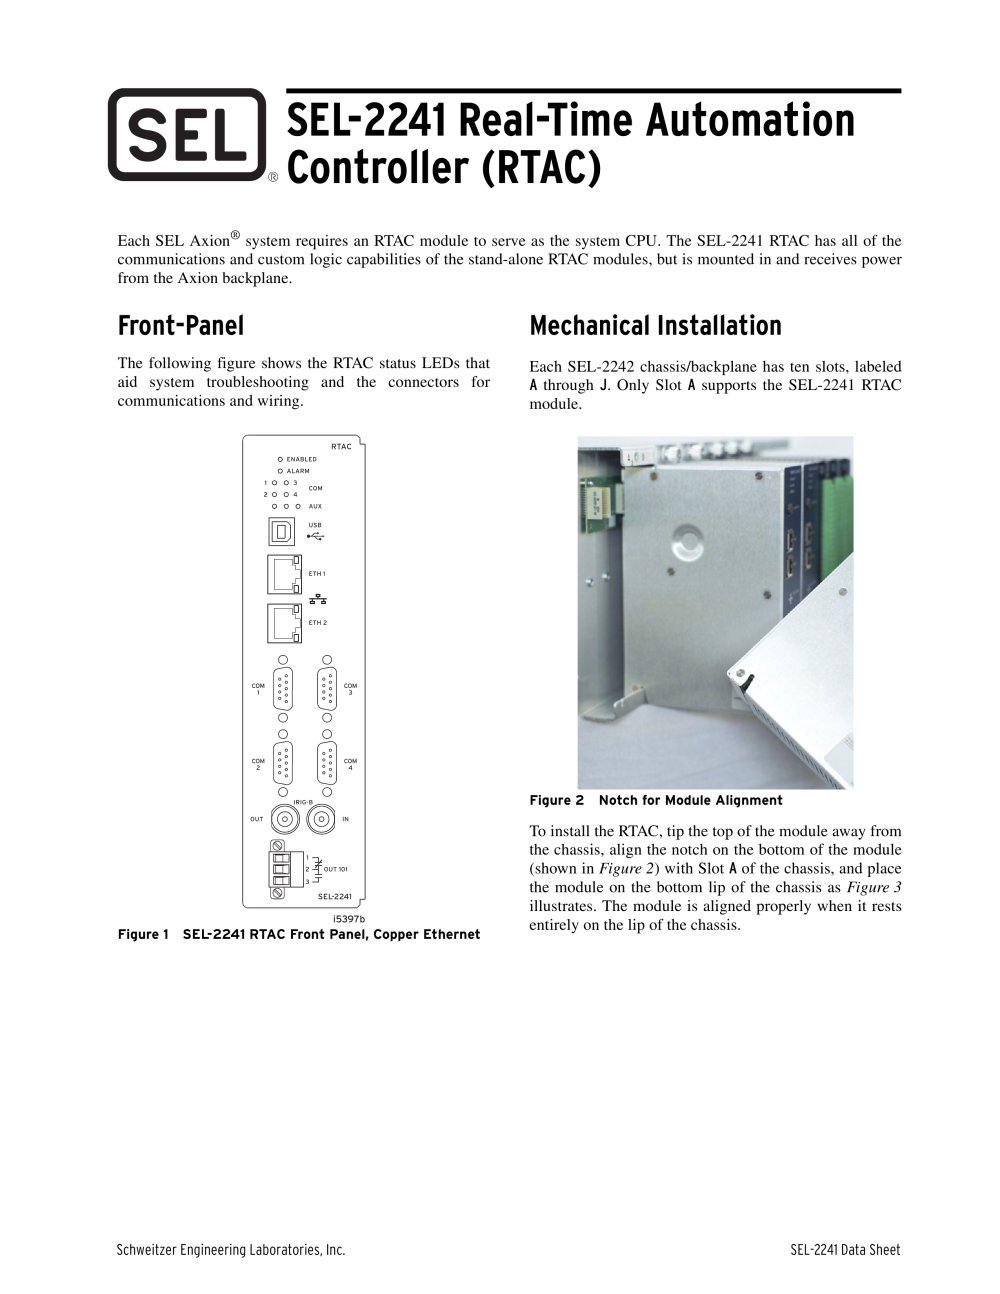 sel 2241 real time automation controller rtac 603708_1b sel 2241 real time automation controller (rtac) schweitzer sel 451 wiring diagram at bakdesigns.co